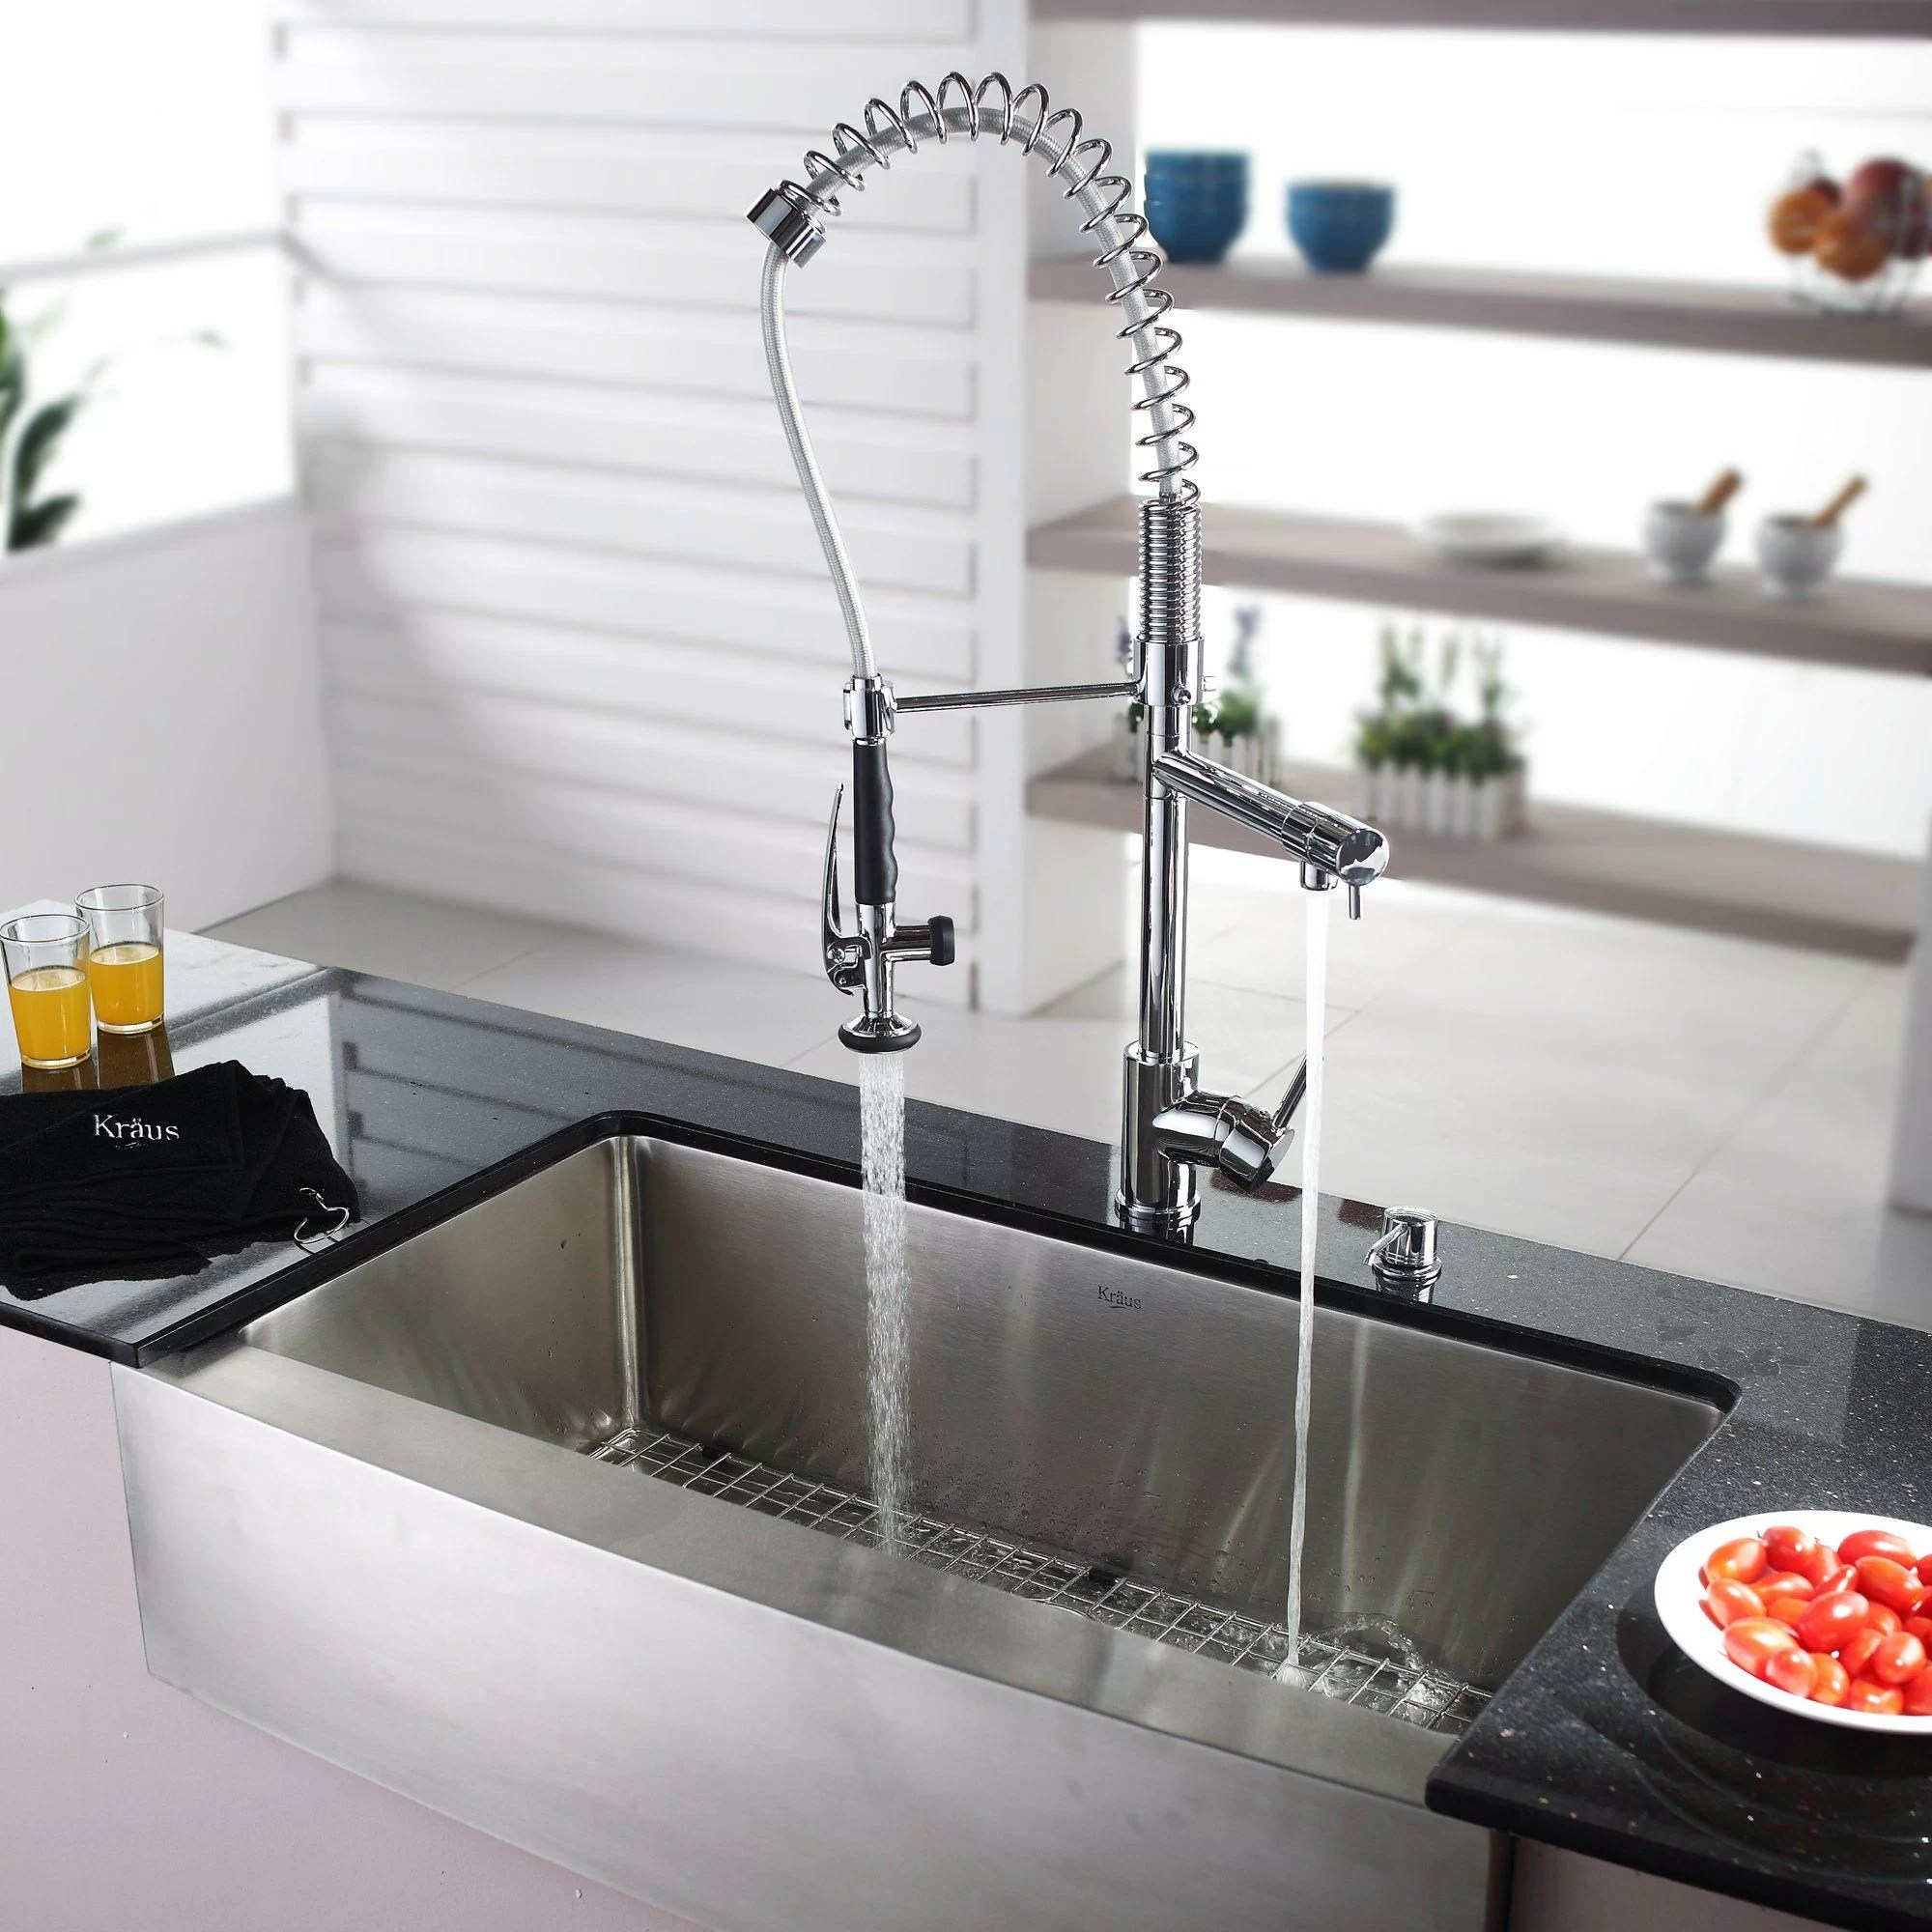 Kraus 35.88 x 20.75 Farmhouse Kitchen Sink with Faucet and Soap Dispenser